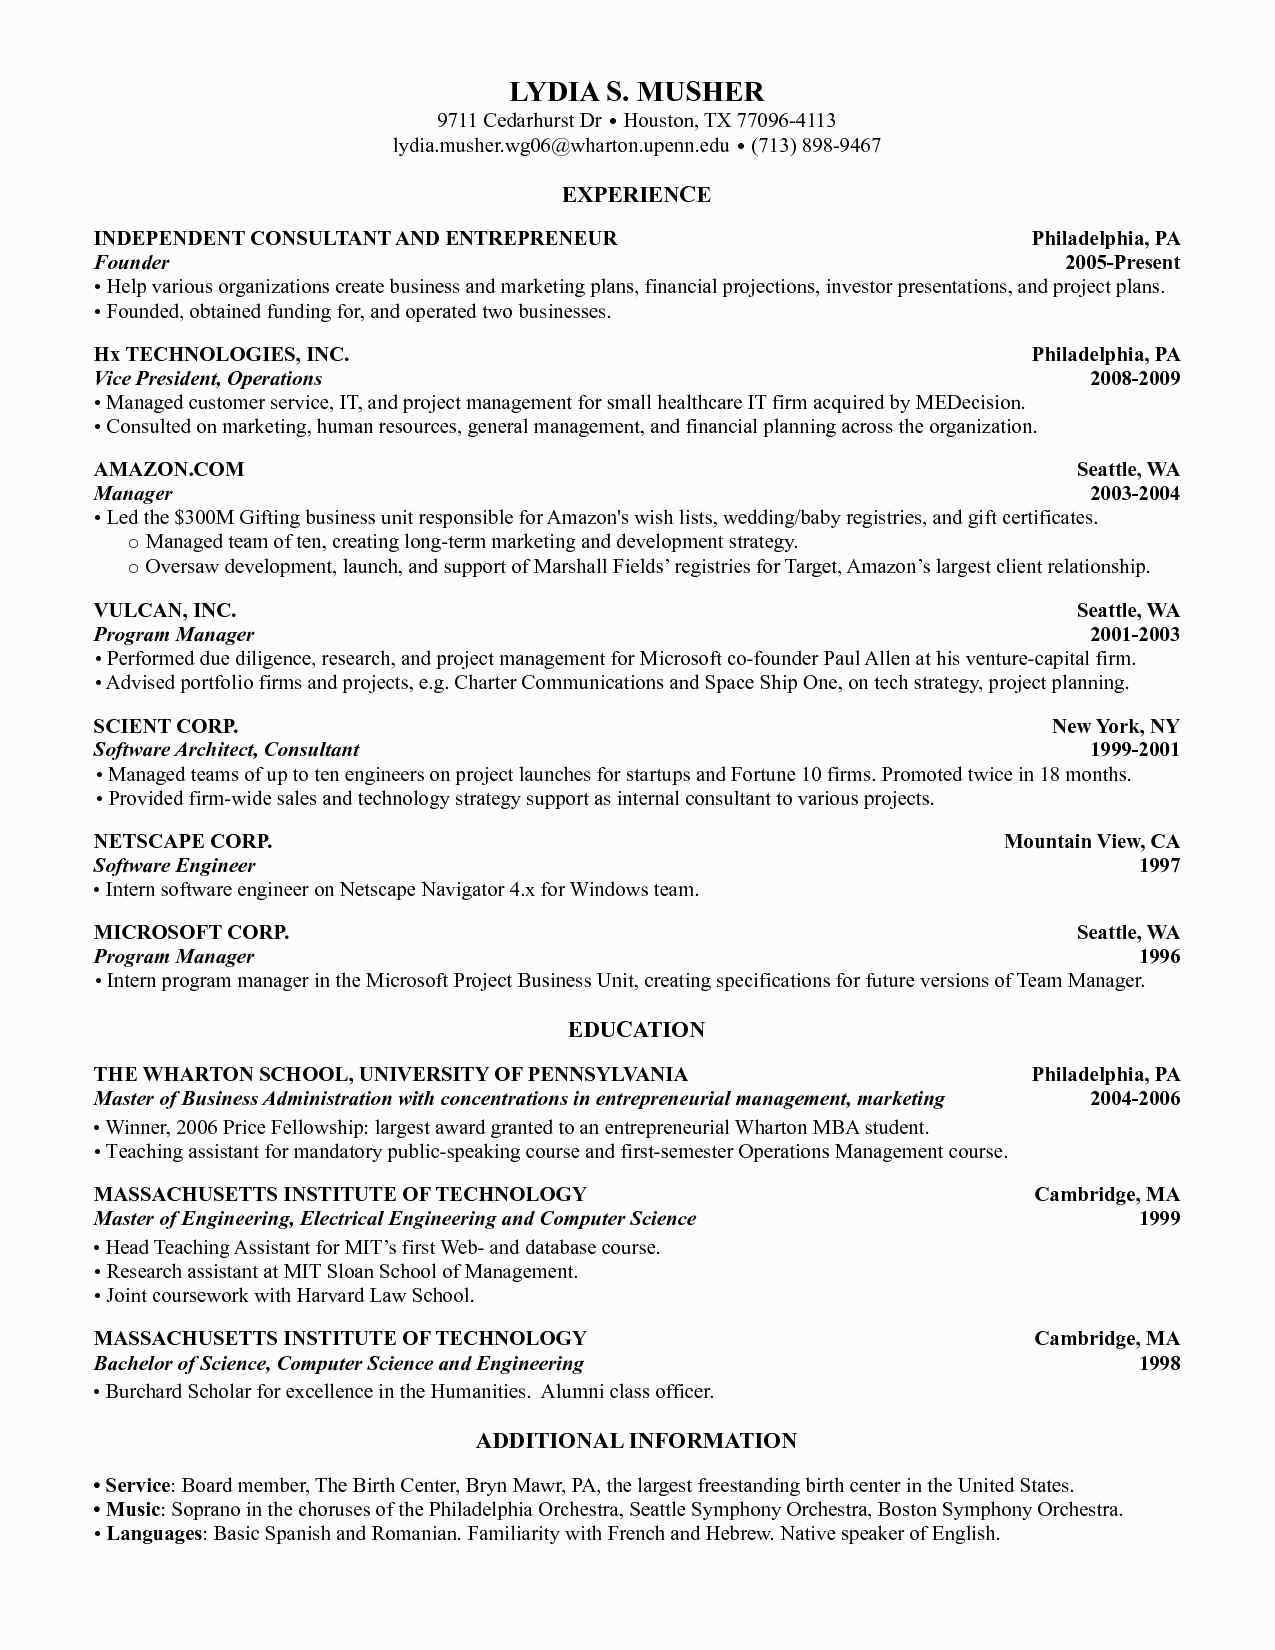 Harvard Business School Business resume template